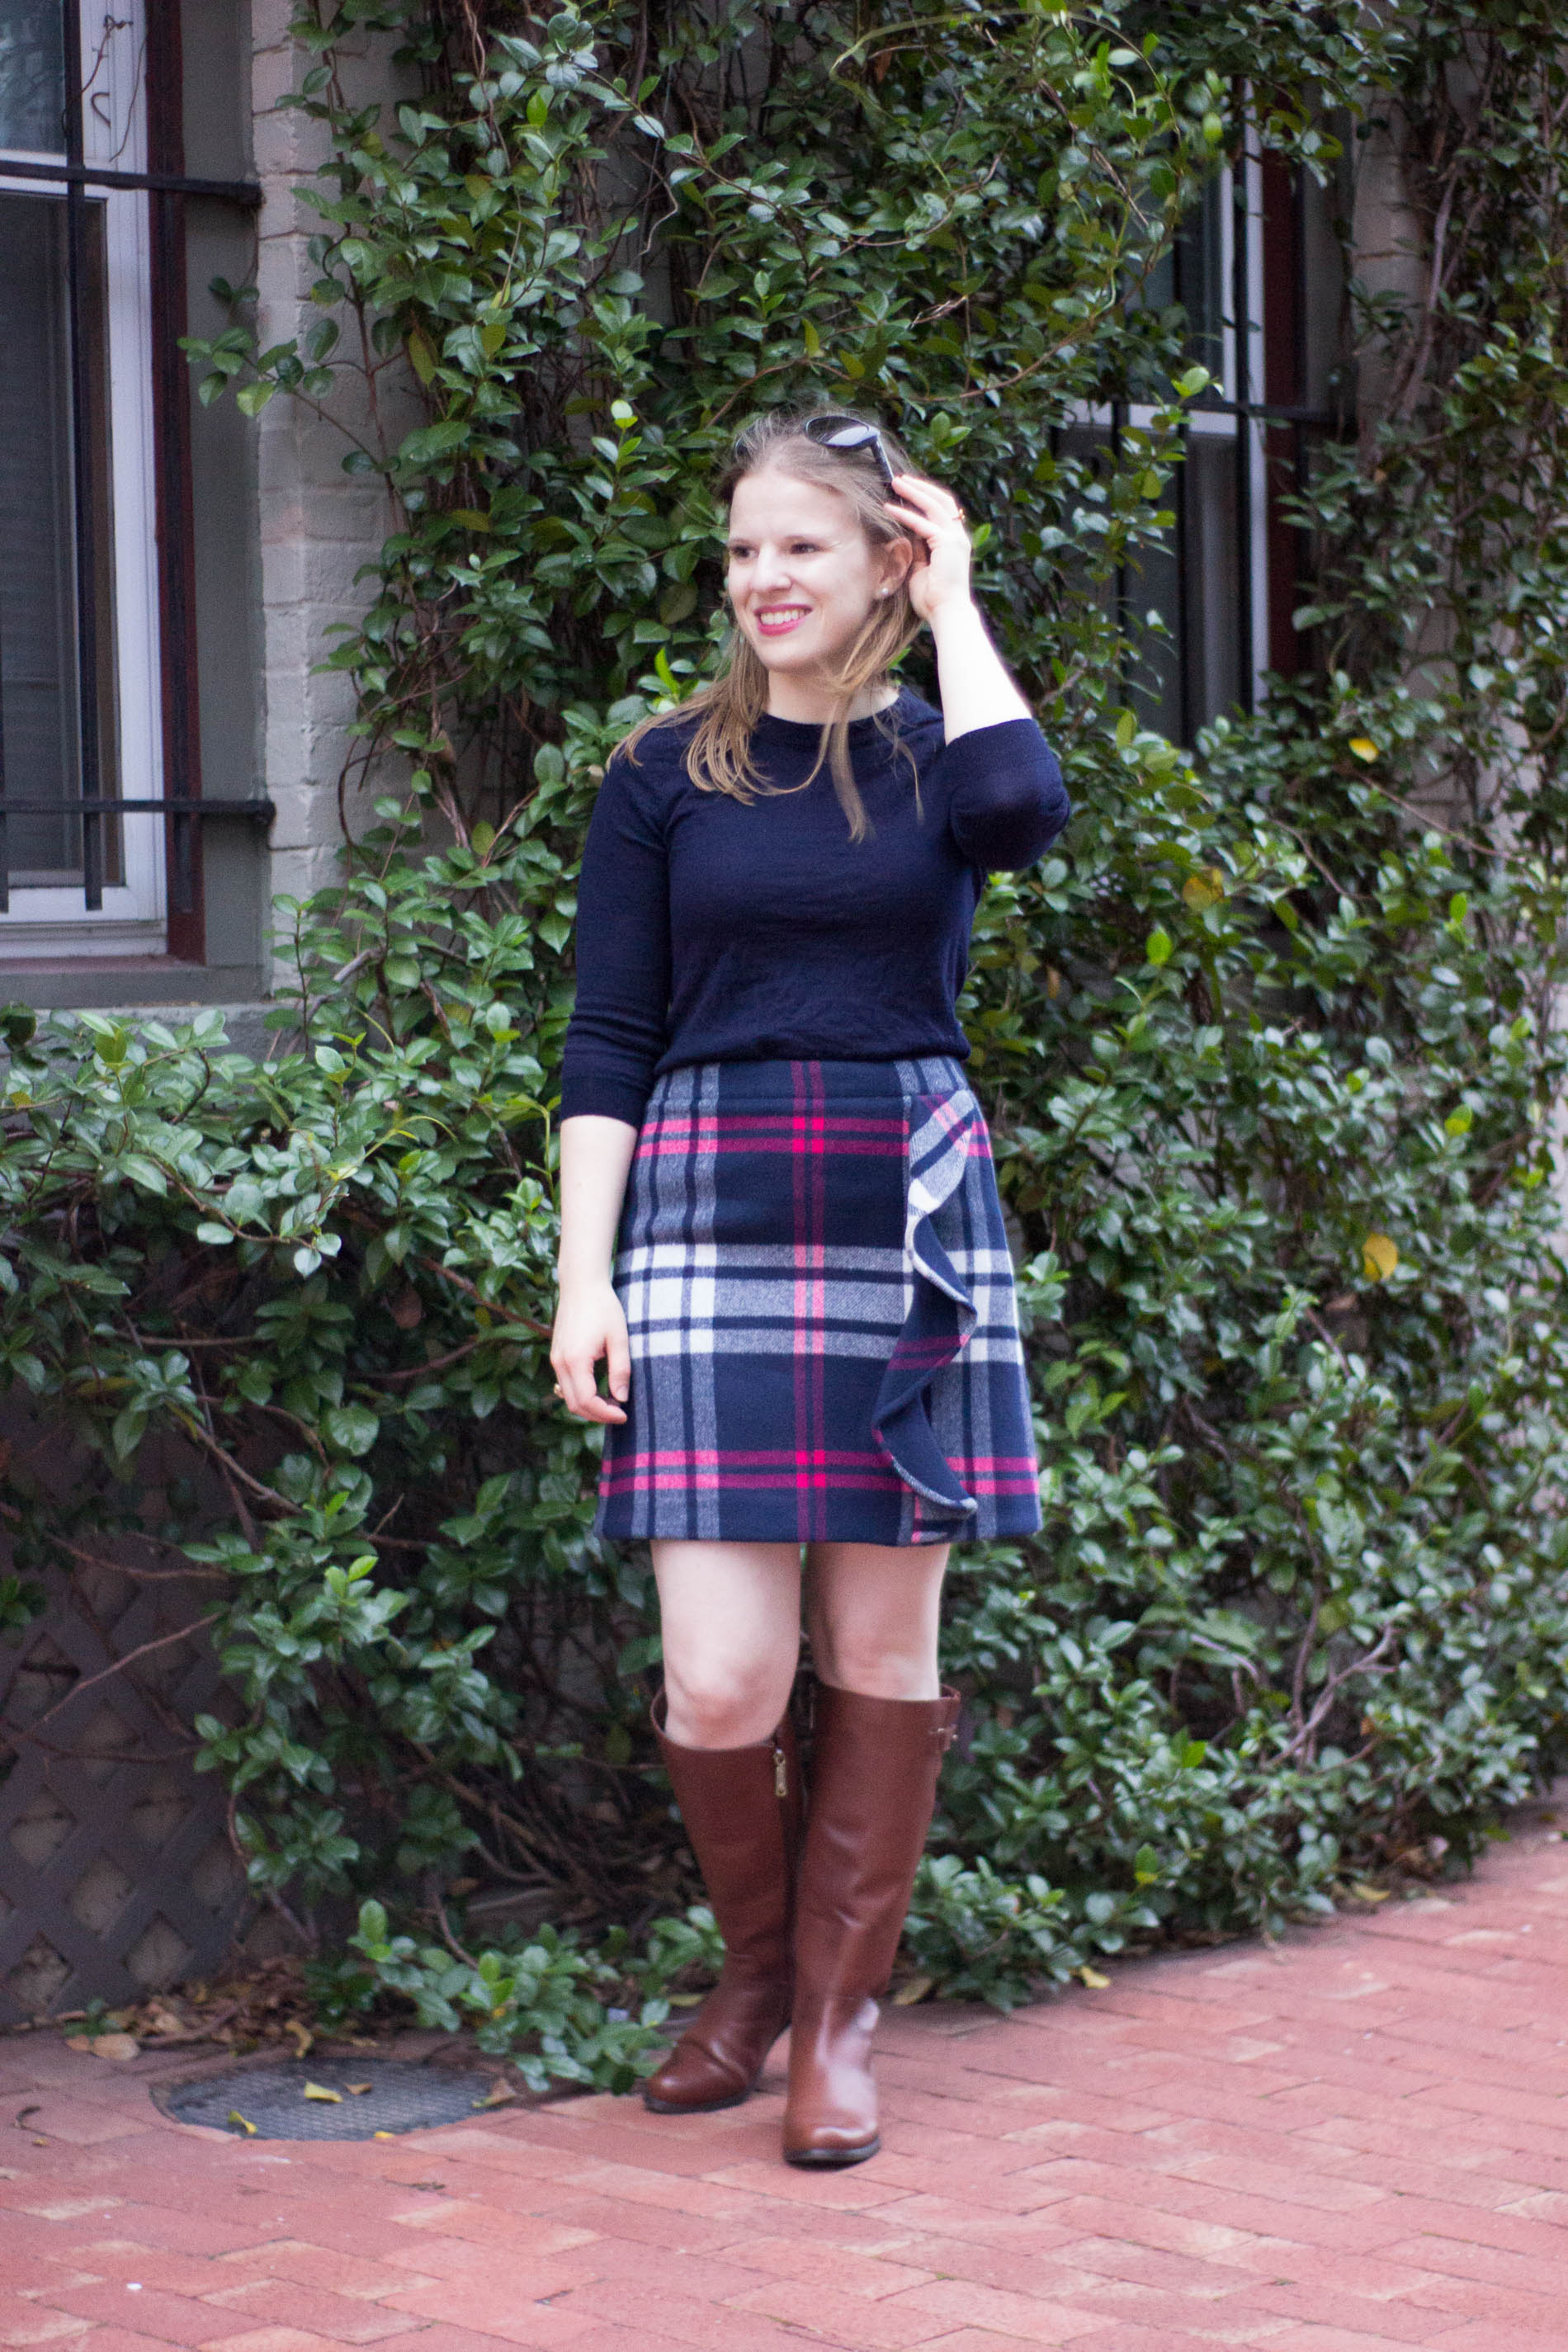 The 5 Days to Holiday Savings Challenge | Something Good, @danaerinw , j.crew factory sweater, j.crew factory crew neck, j.crew plaid ruffle skirt